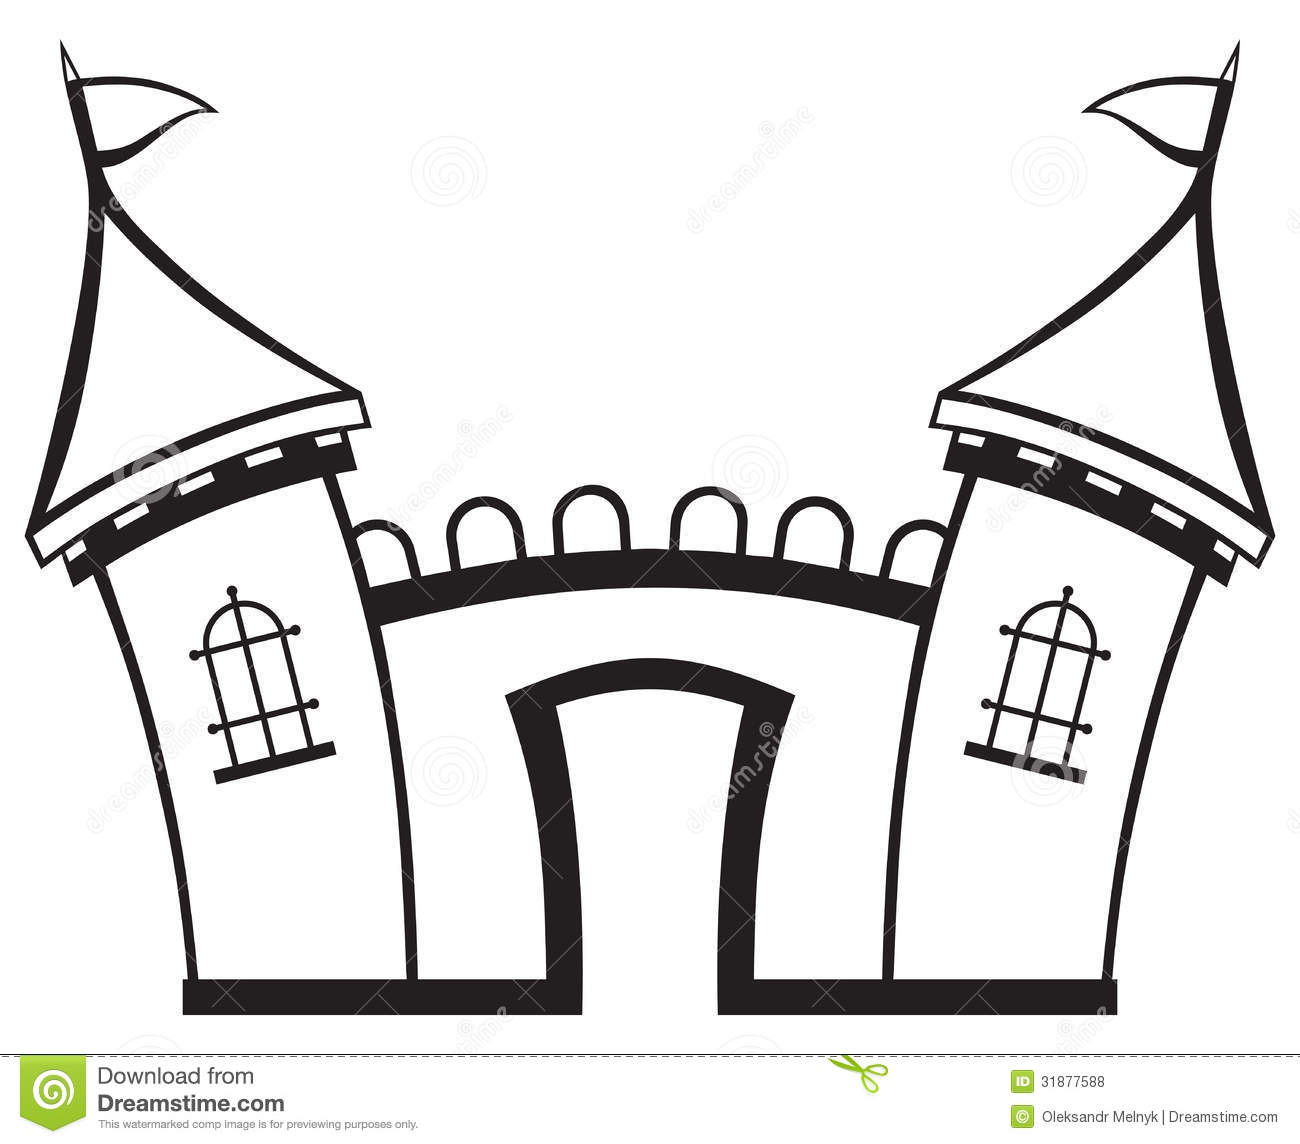 fairytale castle silhouette at getdrawings com free for personal rh getdrawings com